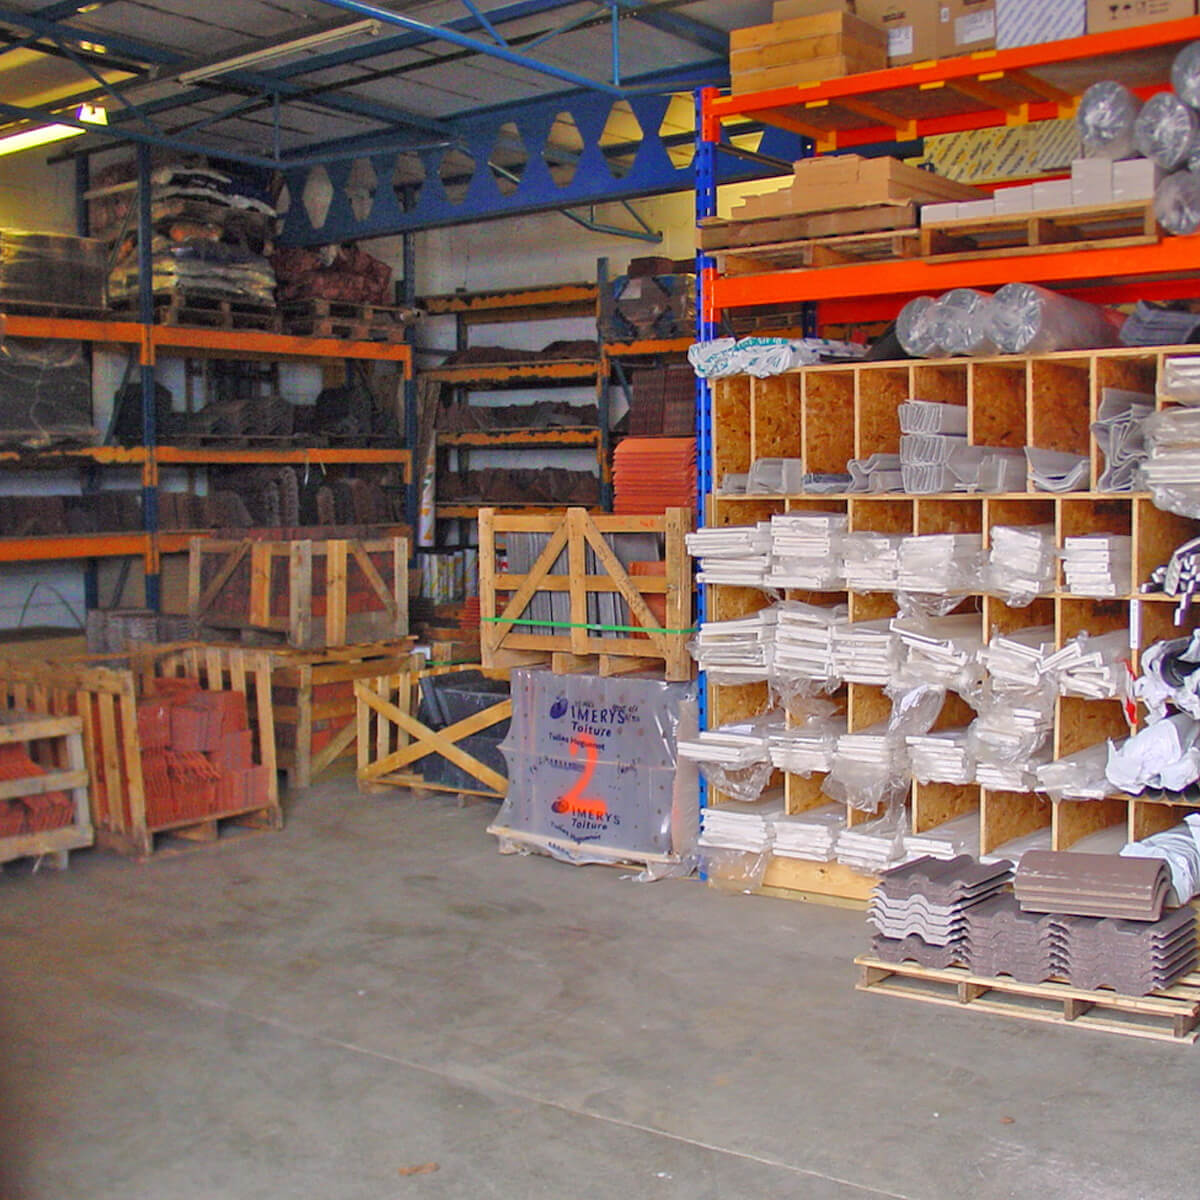 About Roofing Supplies East Grinstead Sussex Rh19 1tu